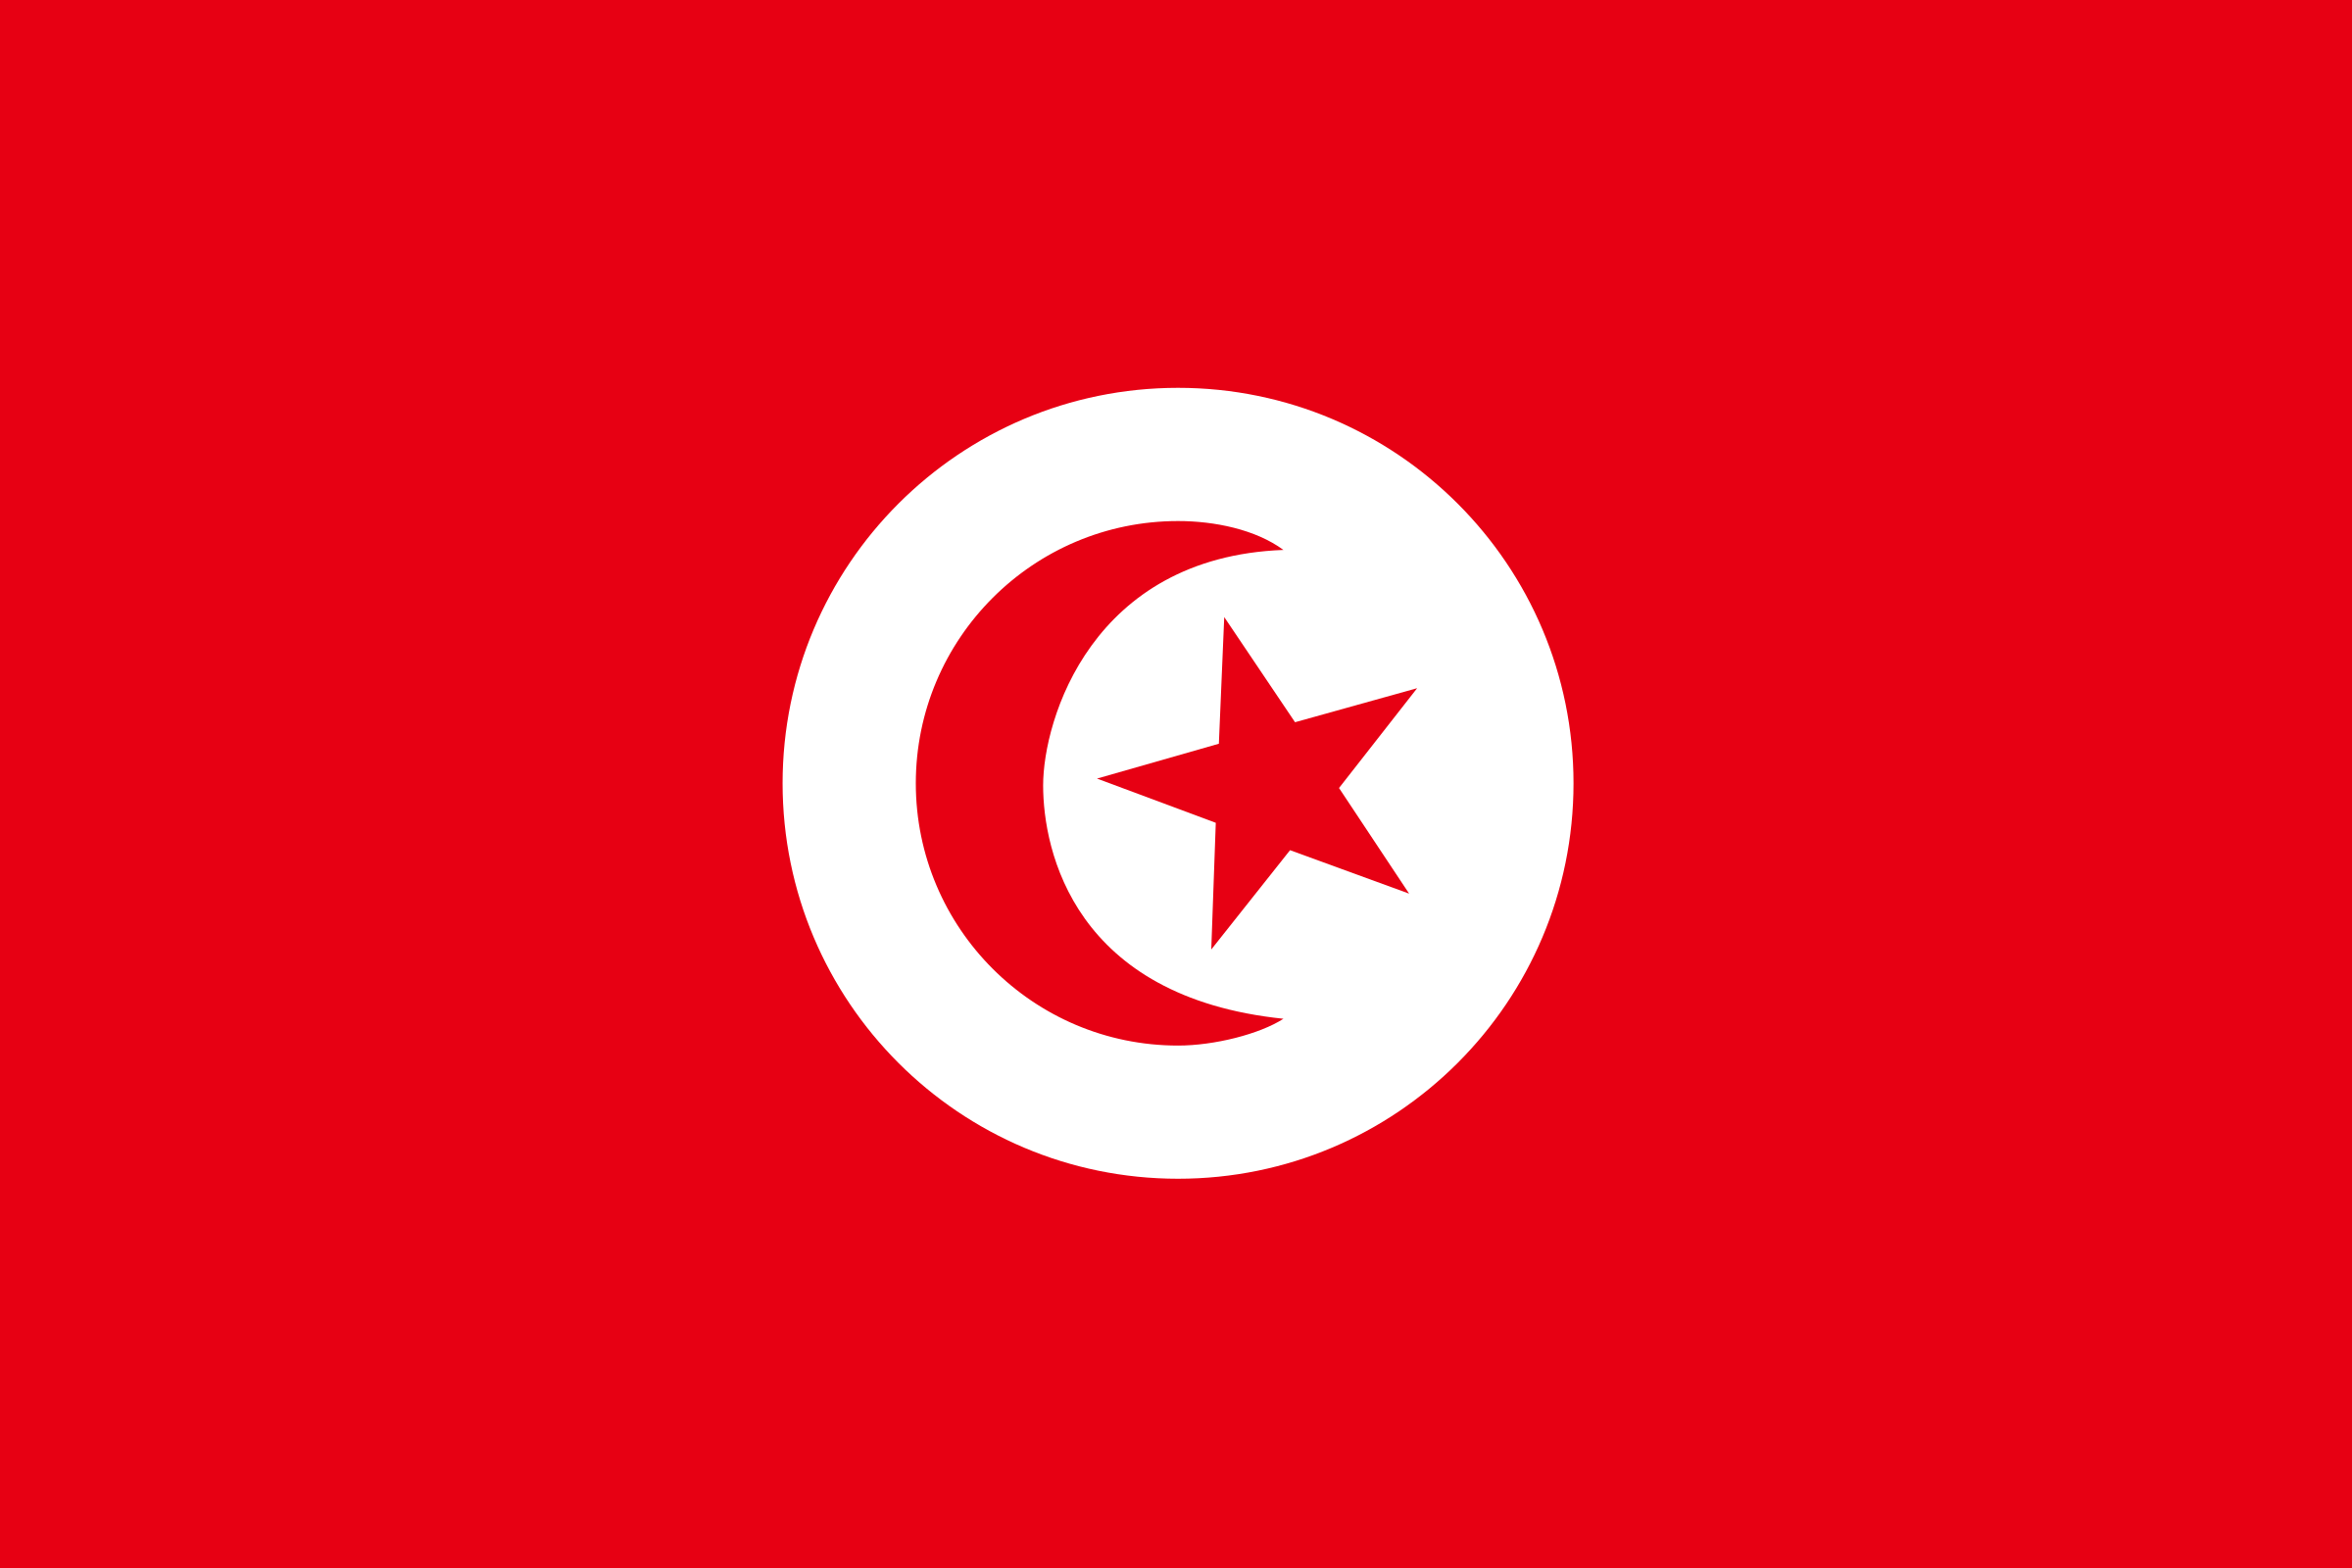 Flag of Tunisia by tobias